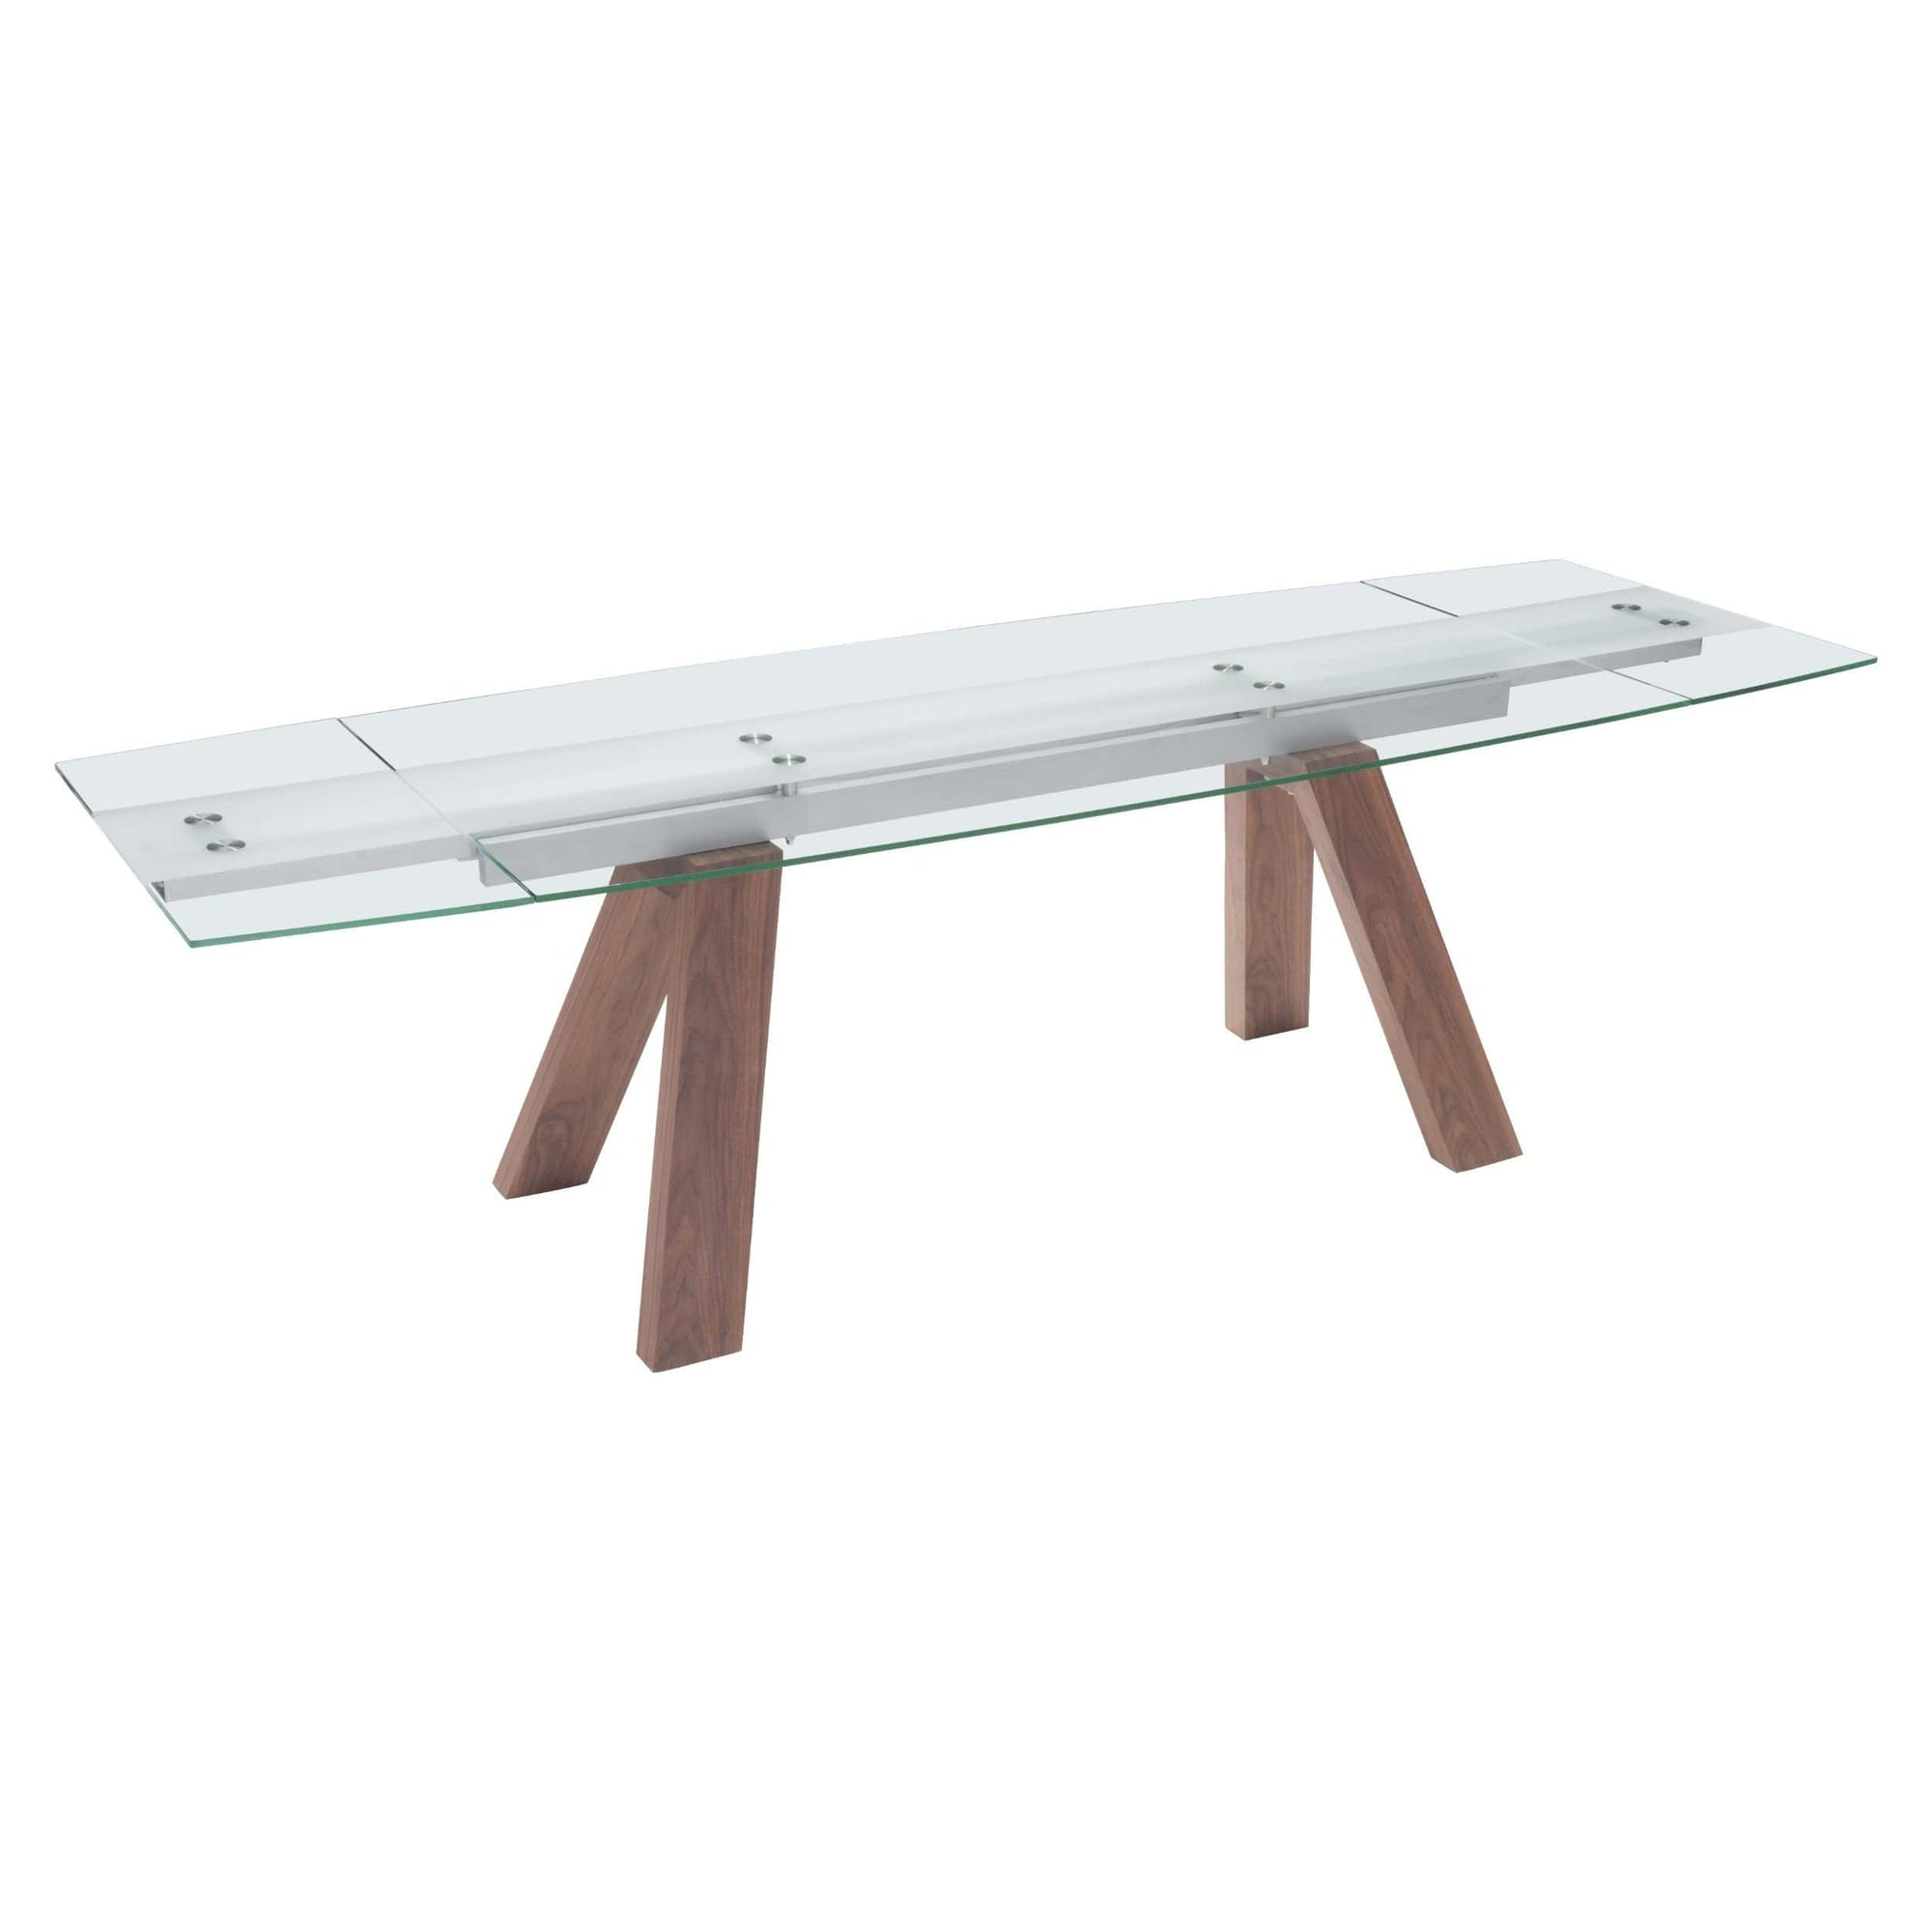 Admirable Wonder Extension Table High Fashion Home Andrewgaddart Wooden Chair Designs For Living Room Andrewgaddartcom